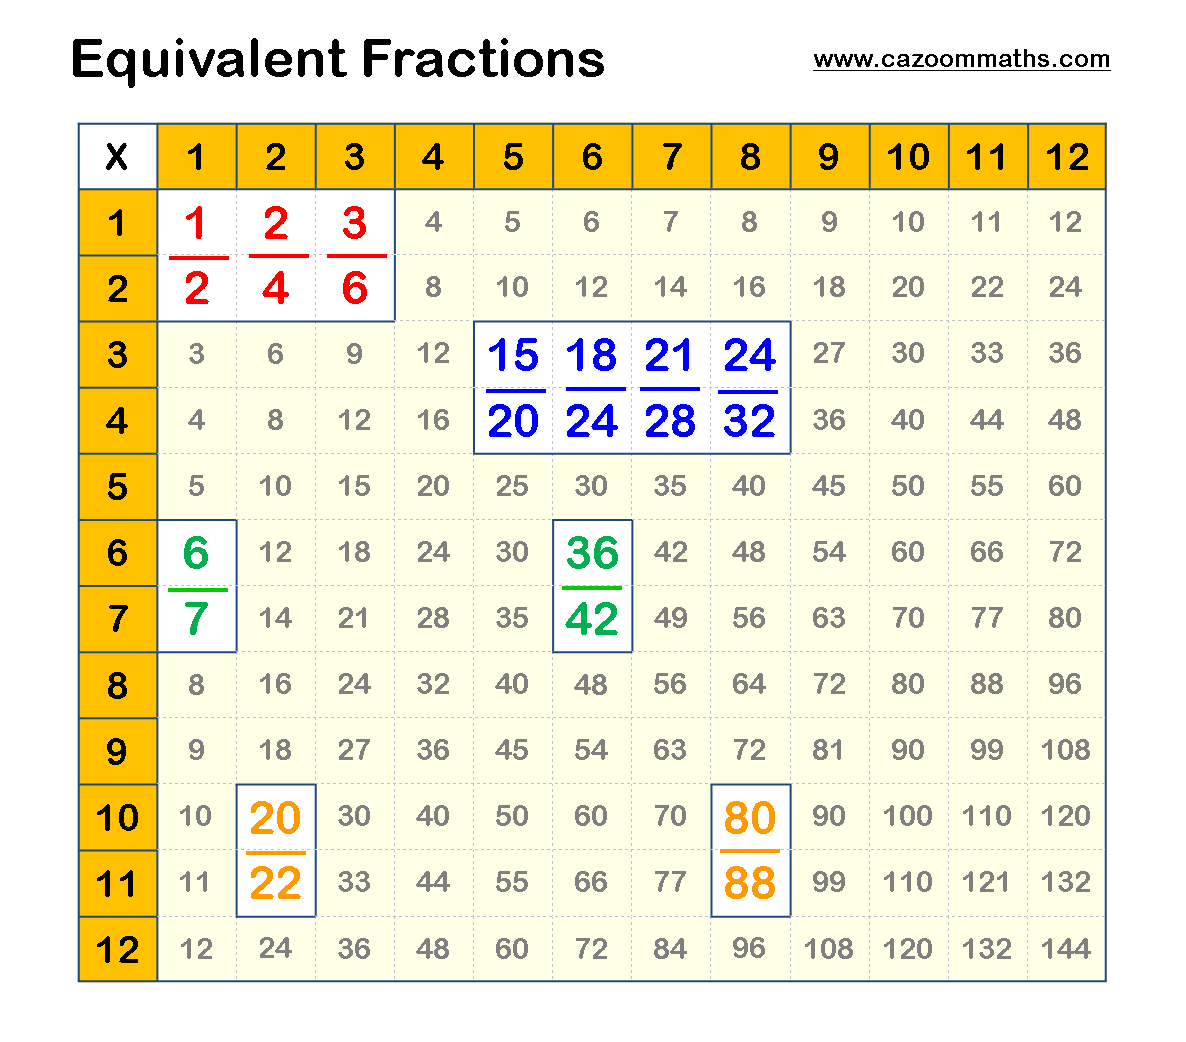 Equivalent Fractions Example